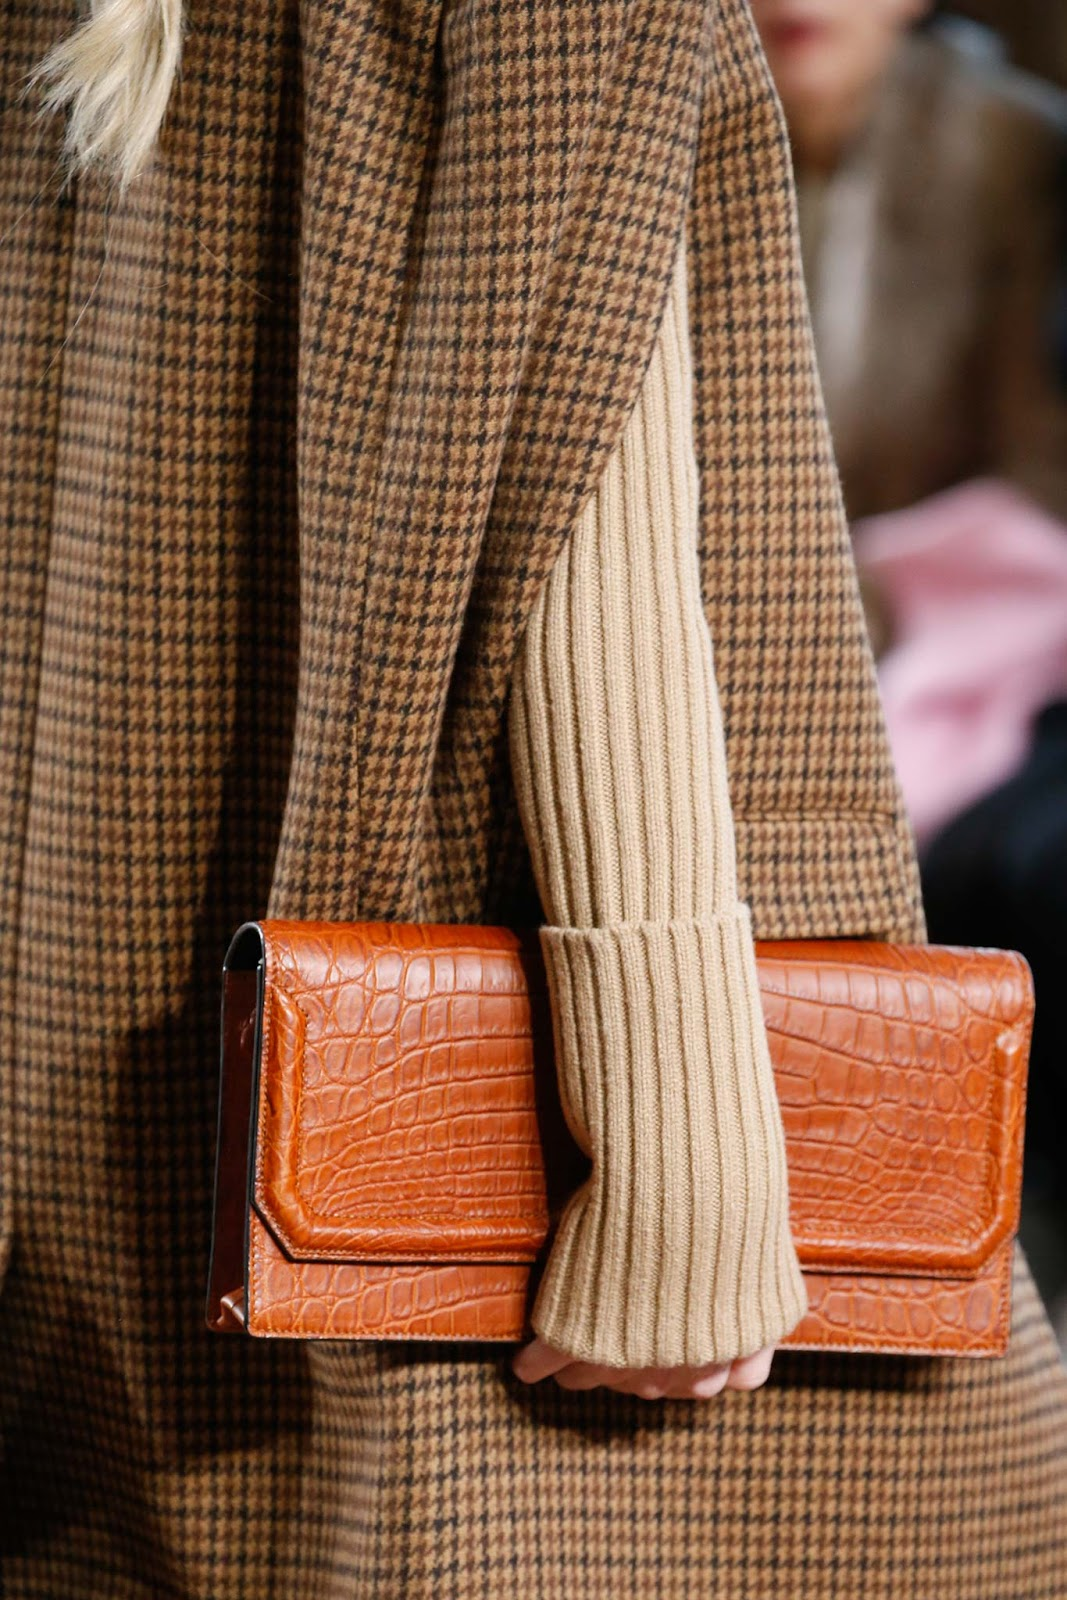 Fall 2015 accessories trend report / best bags / investment bags / crocodile accessories trend at Michael Kors Fall/Winter 2015 via fashionedbylove.co.uk, british fashion blog